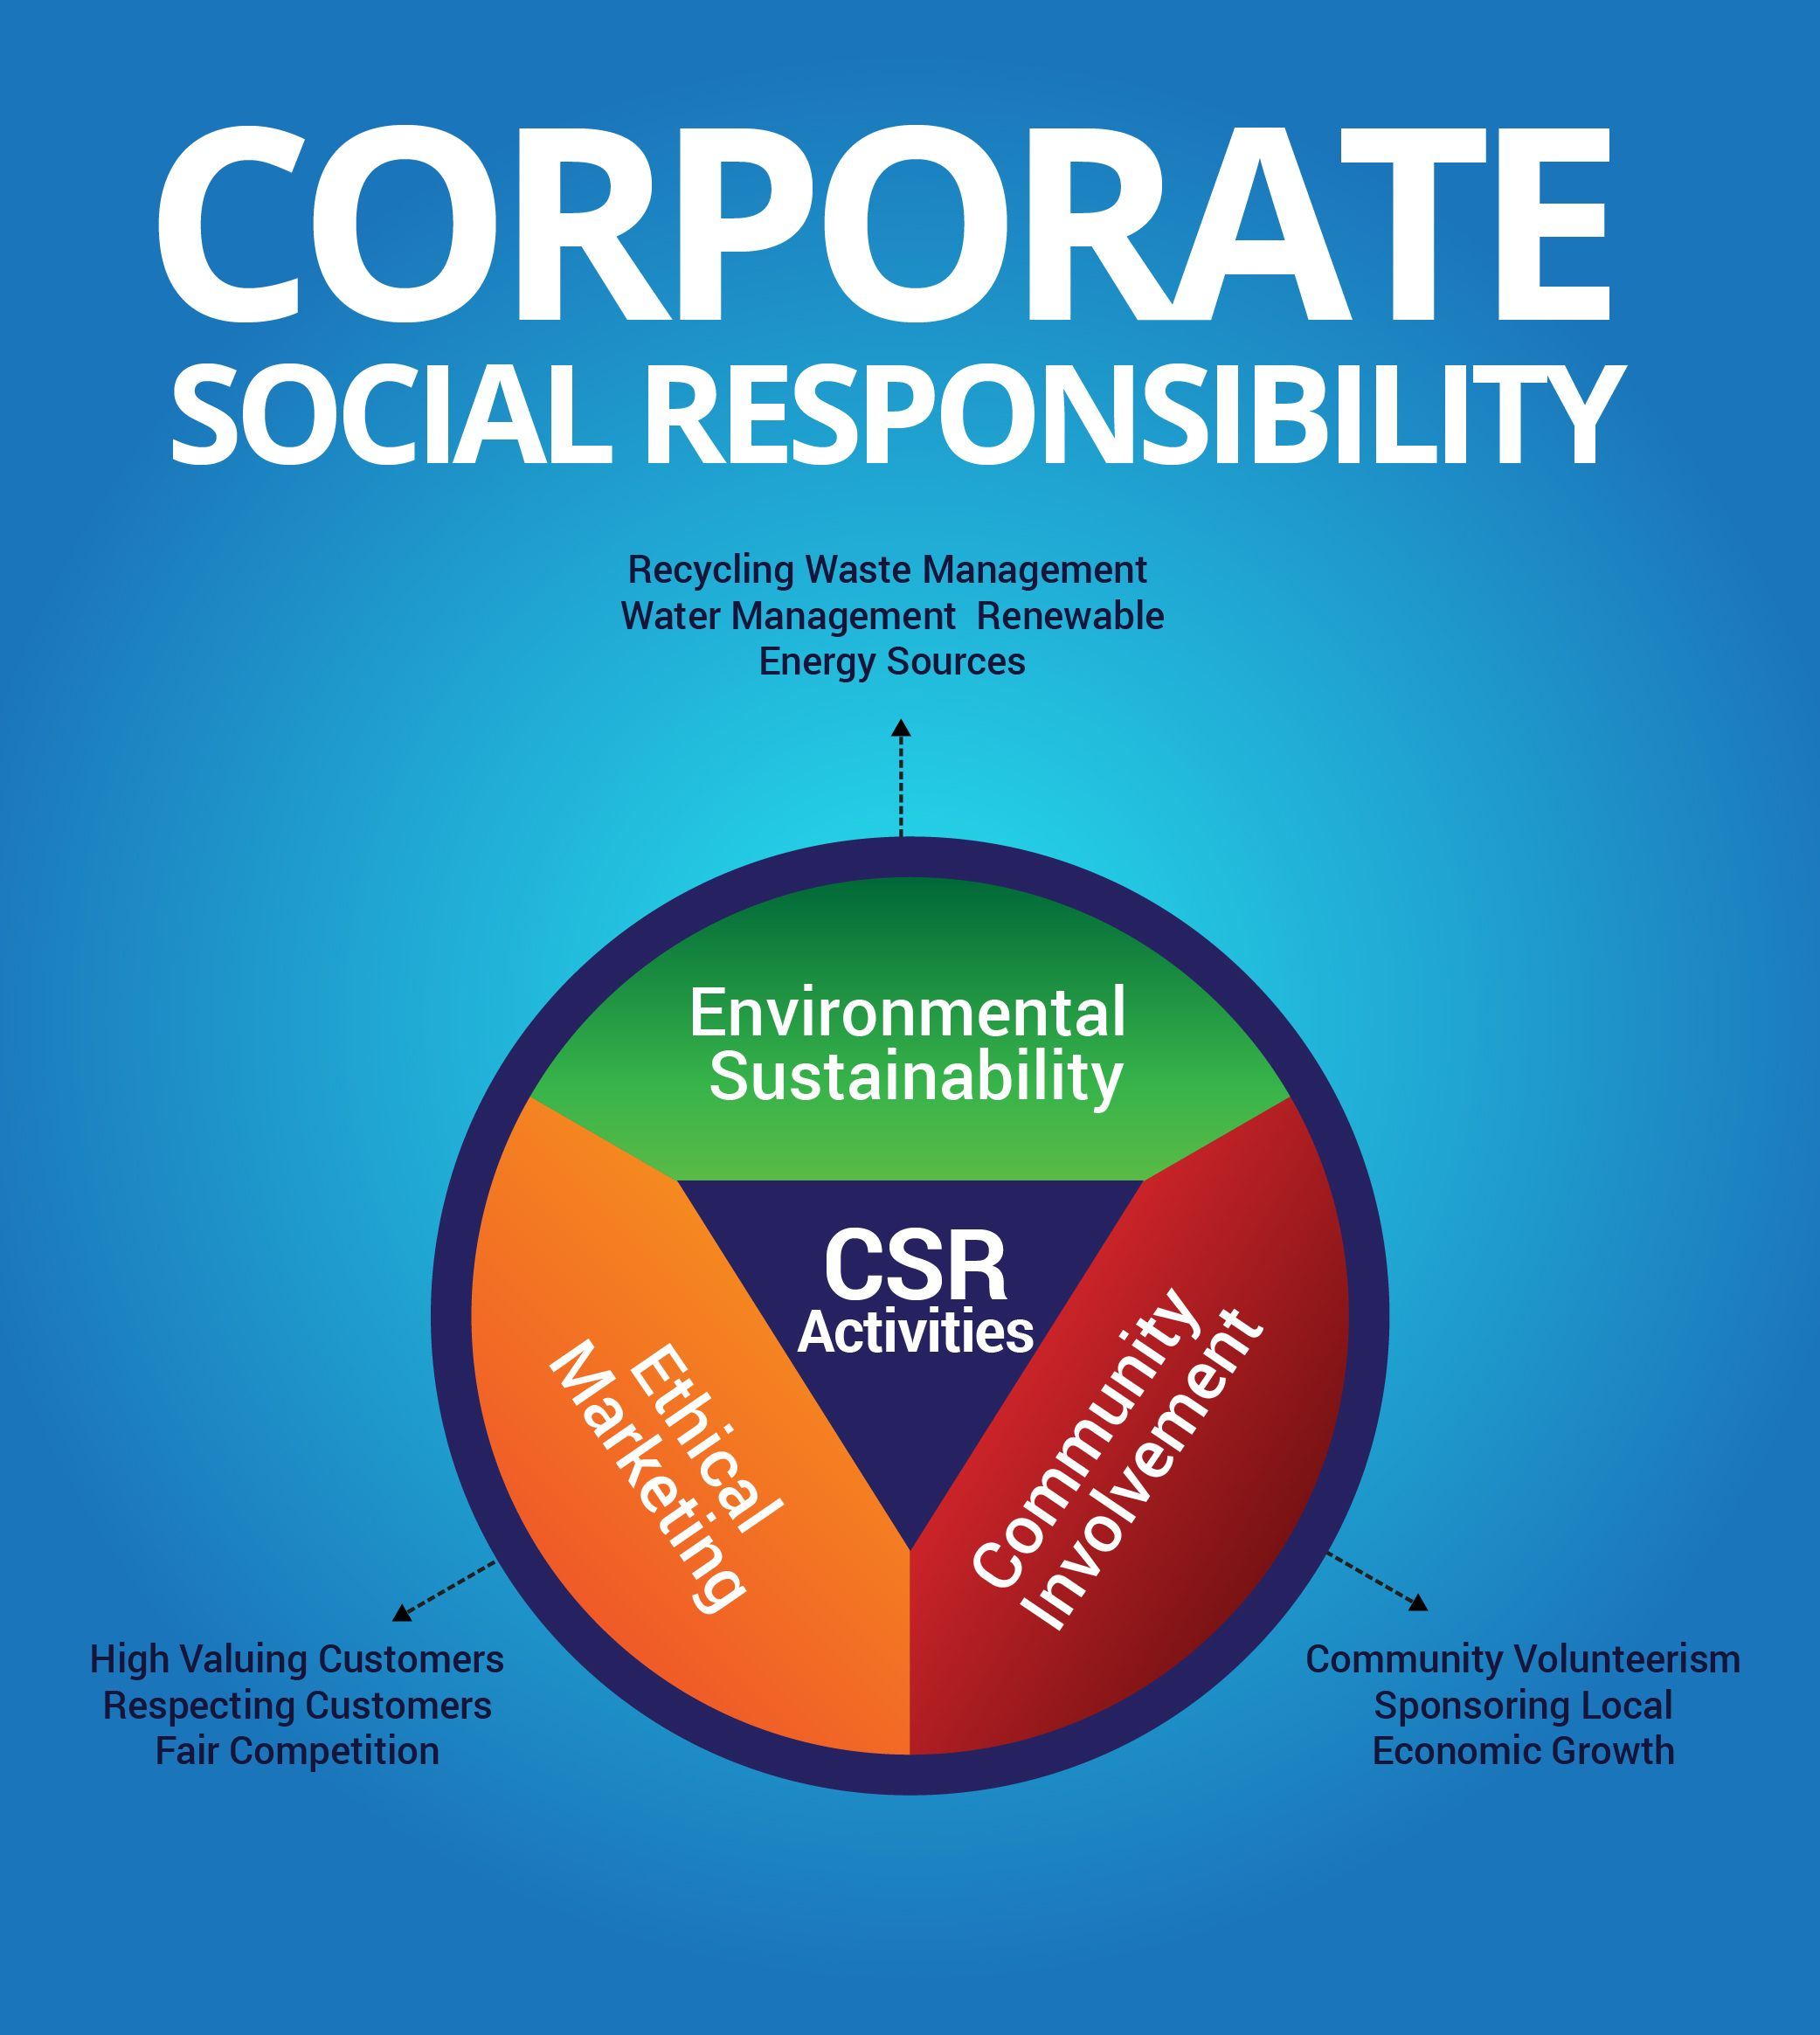 What It Takes To Be A Leader 2 Management Guru Corporate Social Responsibility Social Responsibility Business Ethics